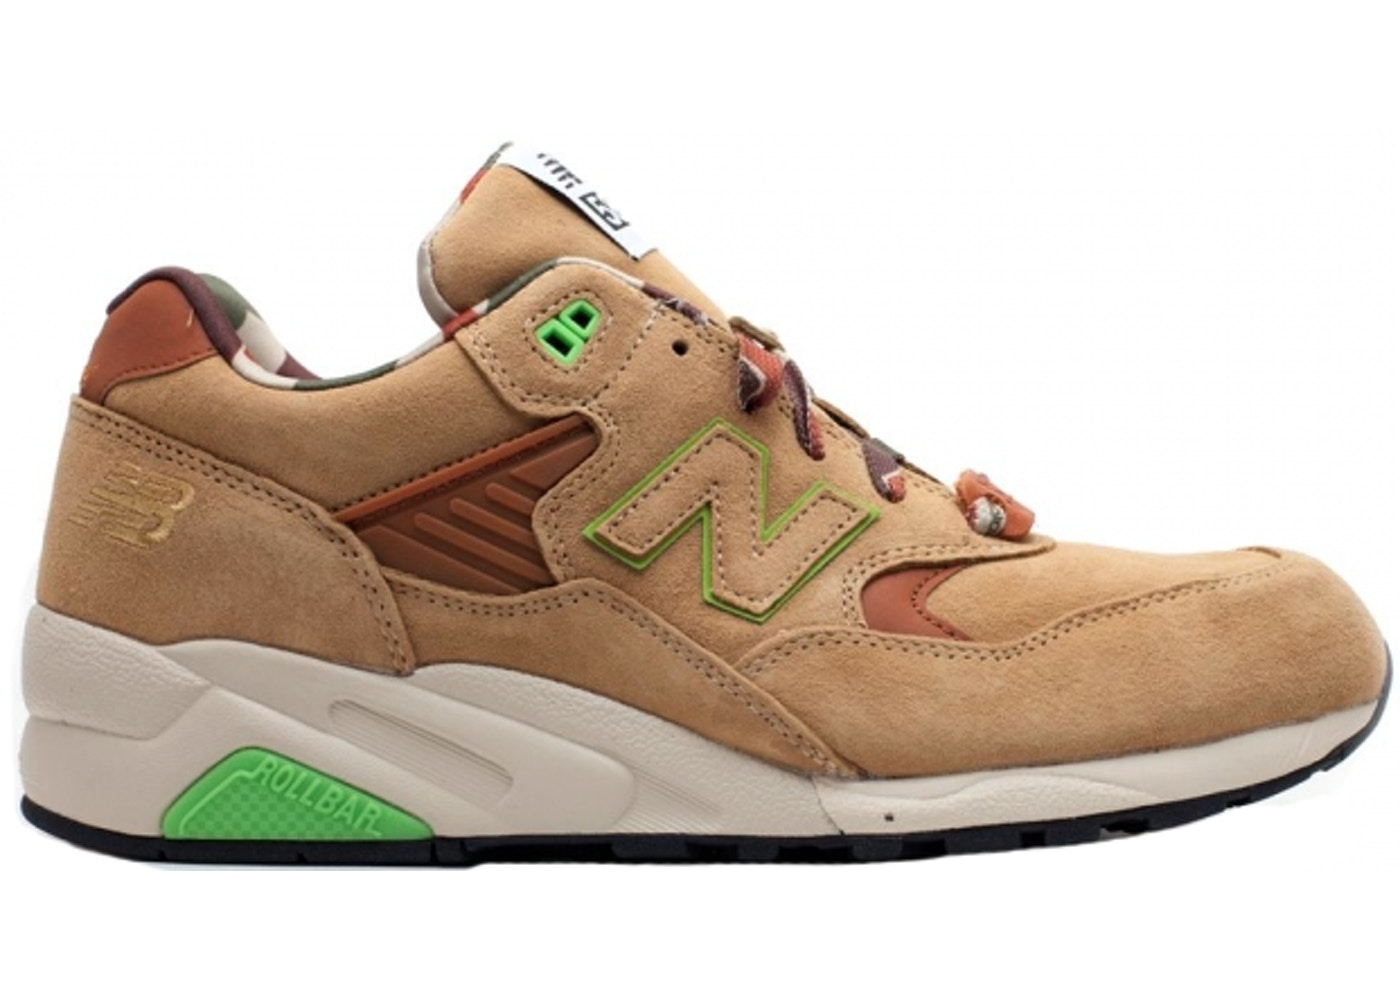 huge selection of 682ae 5ff65 New Balance 580 Fingercroxx